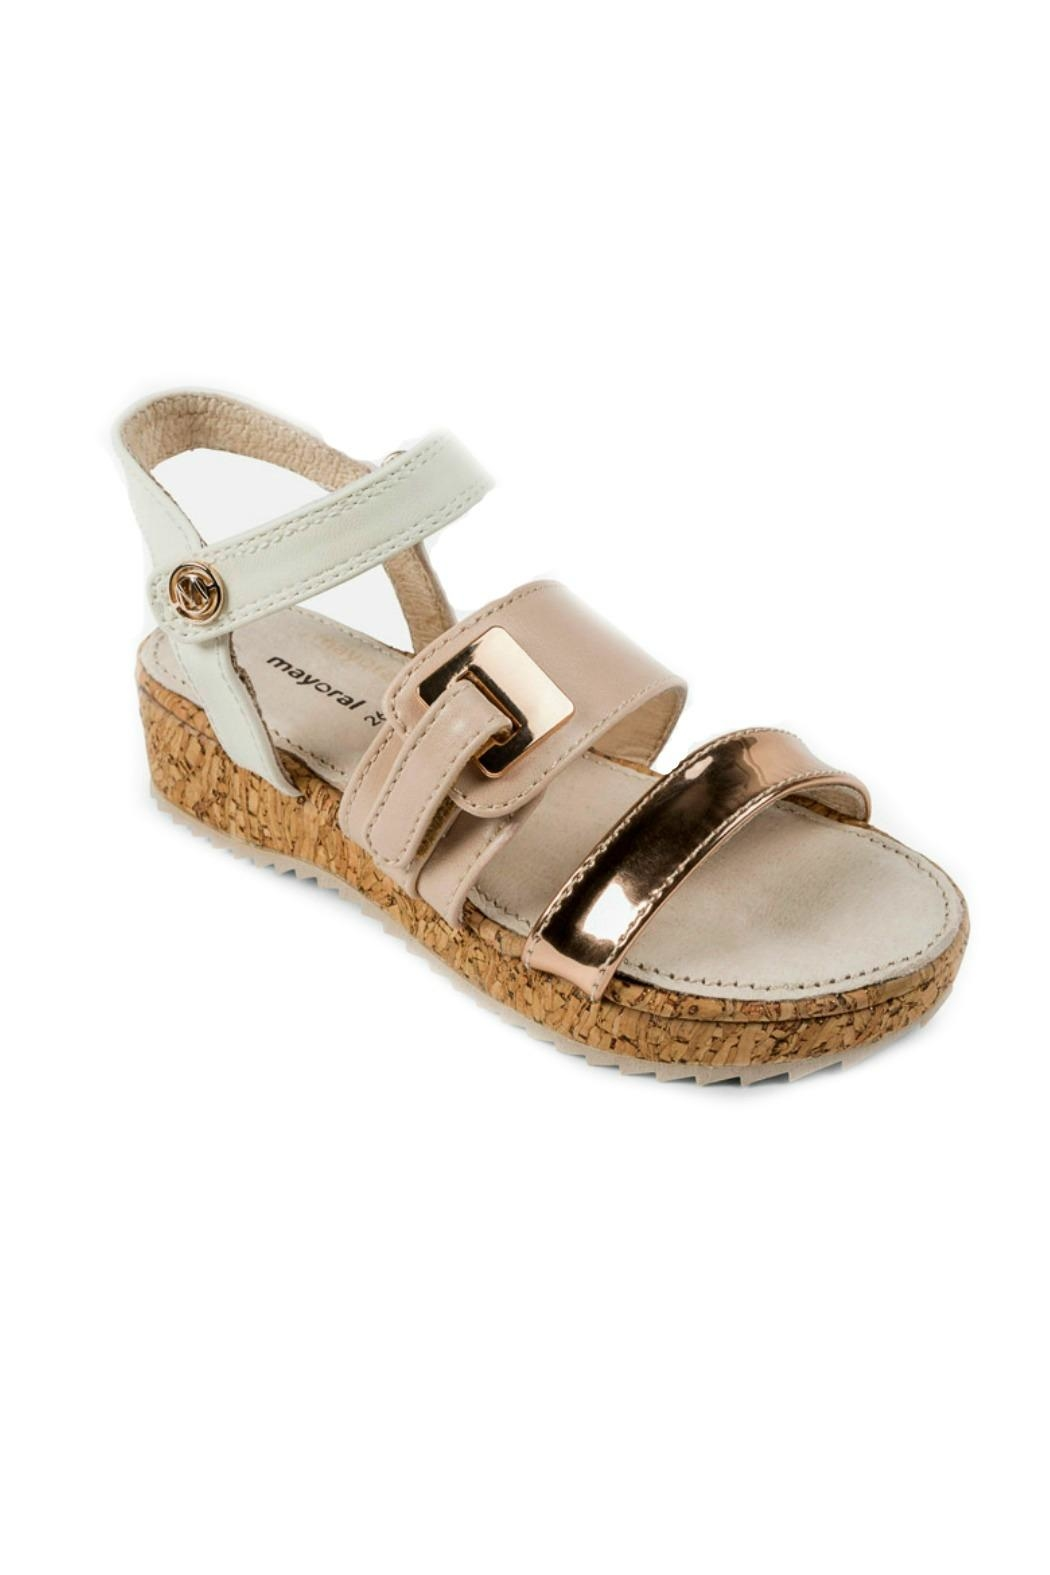 Mayoral Girls Cork-Platform Sandals - Main Image